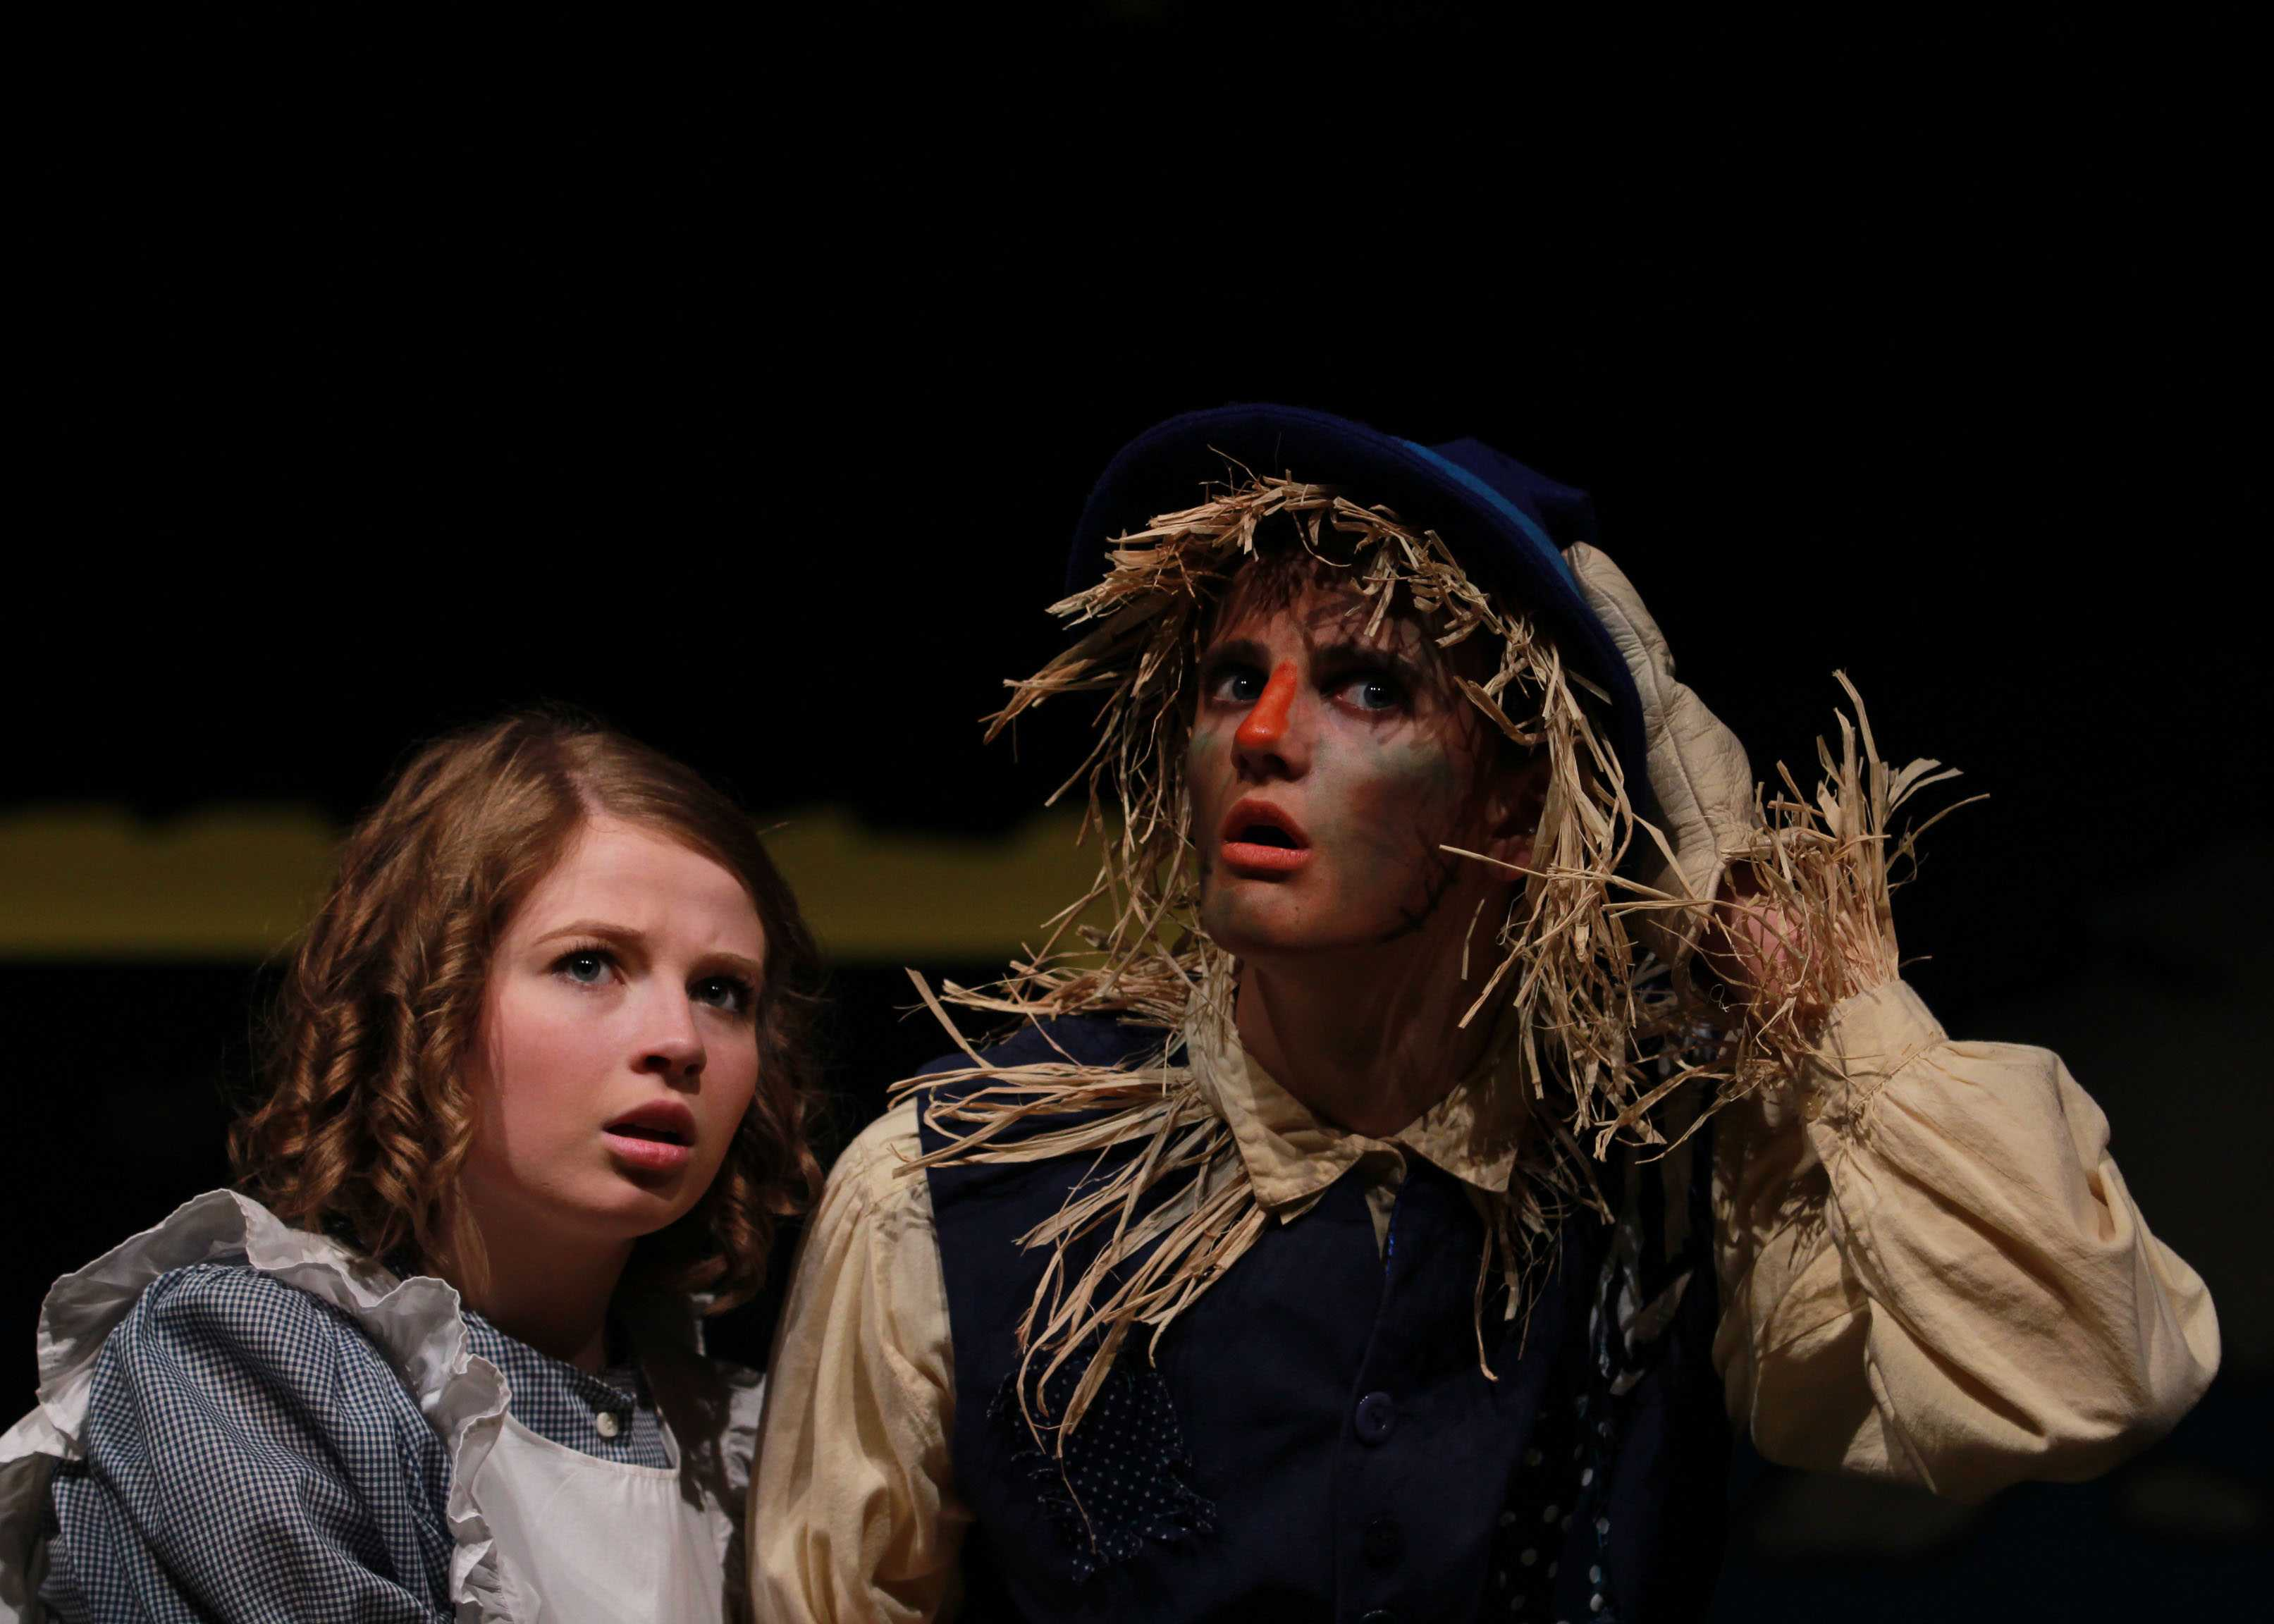 Senior+Rebecca+Russell+with+freshman+Joshua+Shipp+as+Dorothy+and+the+Scarecrow+during+Wednesday%27s+elementary+school+performance.++This+is+Shipp%27s+first+feature+role+with+the+CRTC.++